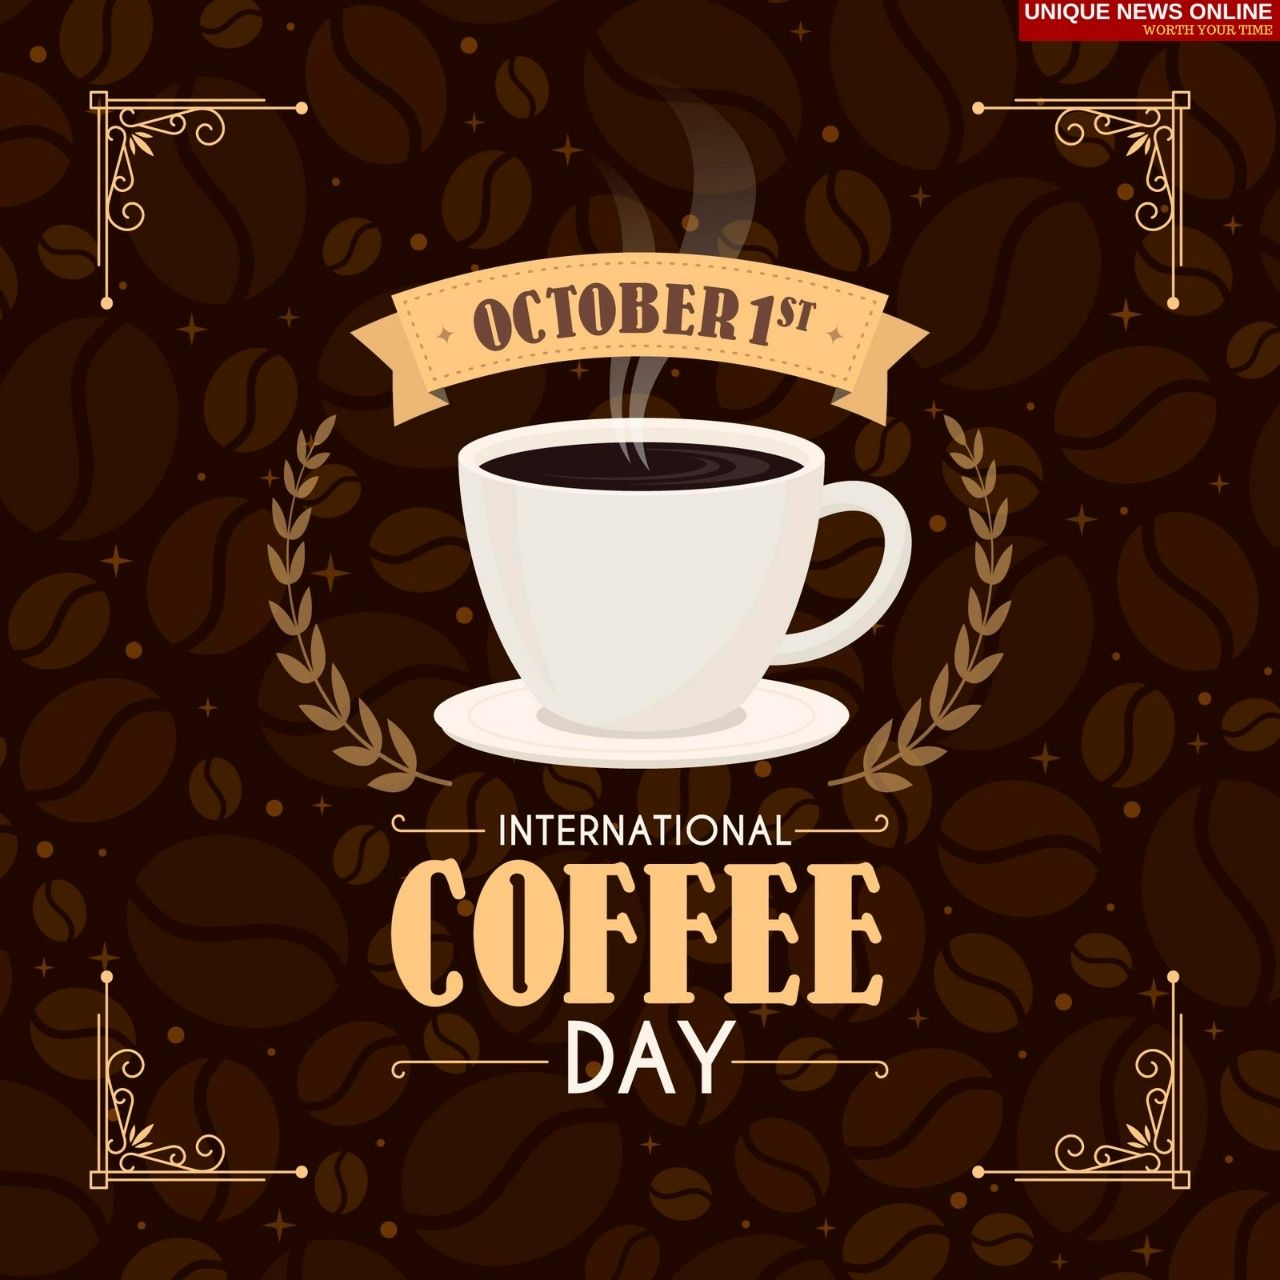 International Coffee Day 2021 Quotes, Captions, Wishes, Poster, HD Images, Messages, Meme and Gif to Share